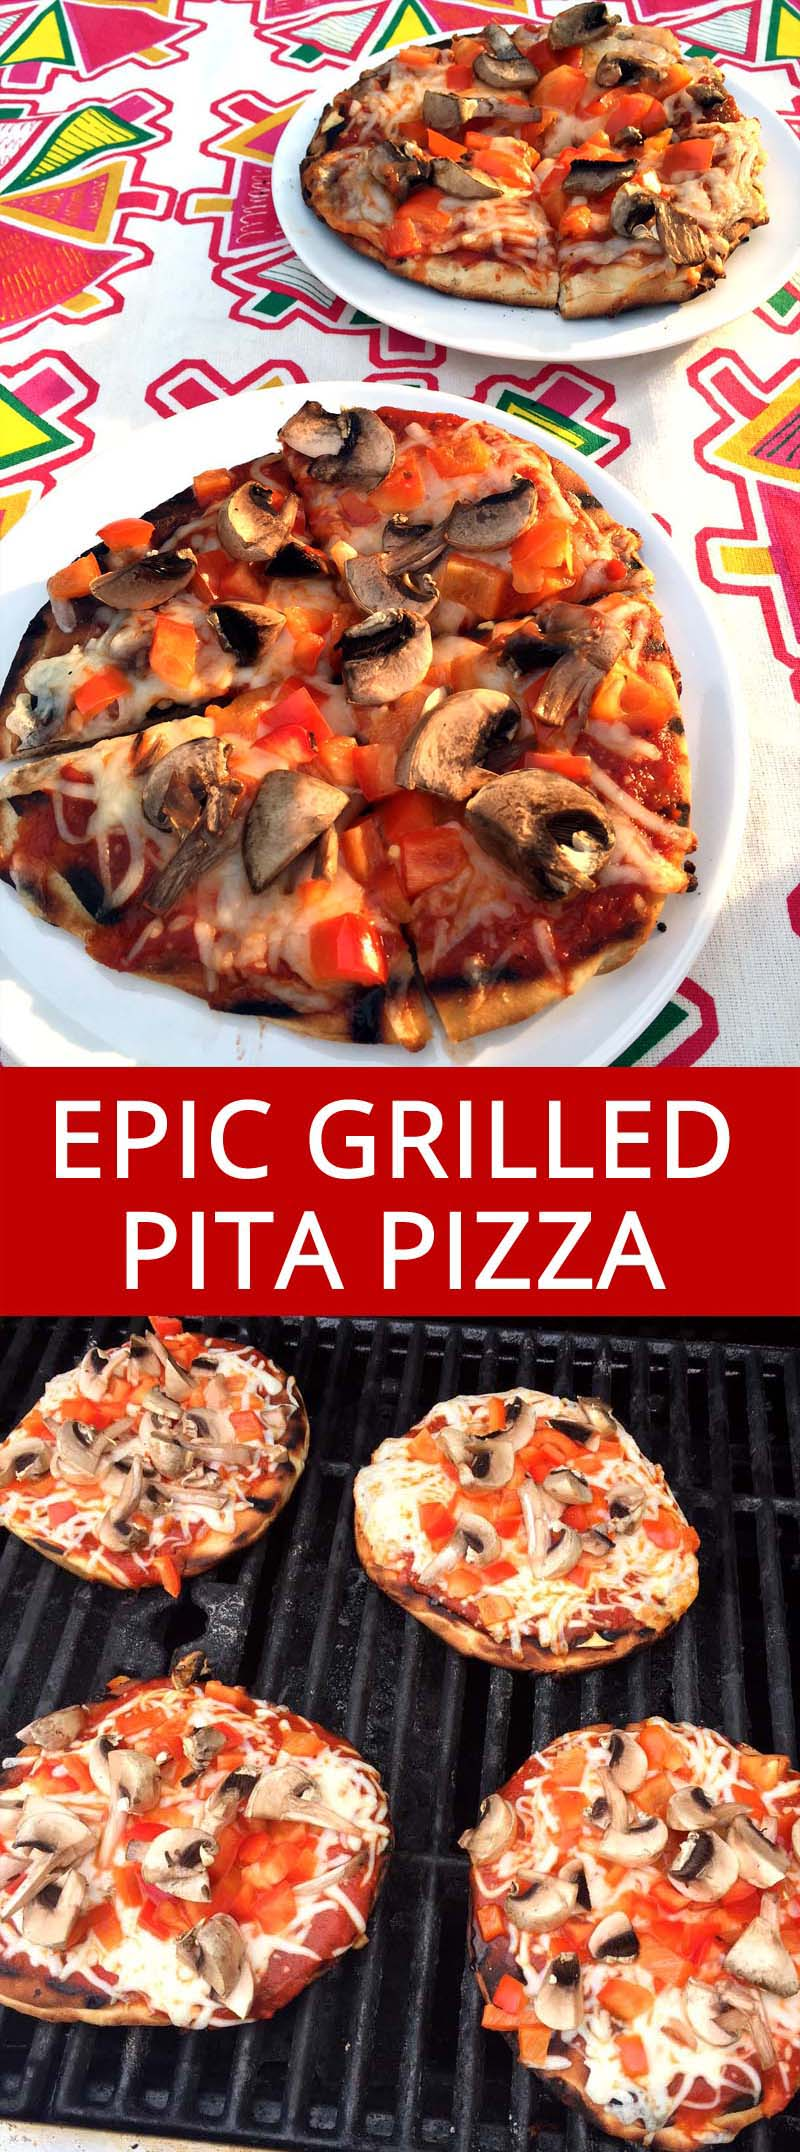 I love this grilled pita pizza! It's so easy to grill pizza this way! I'm going to make it every week this summer!